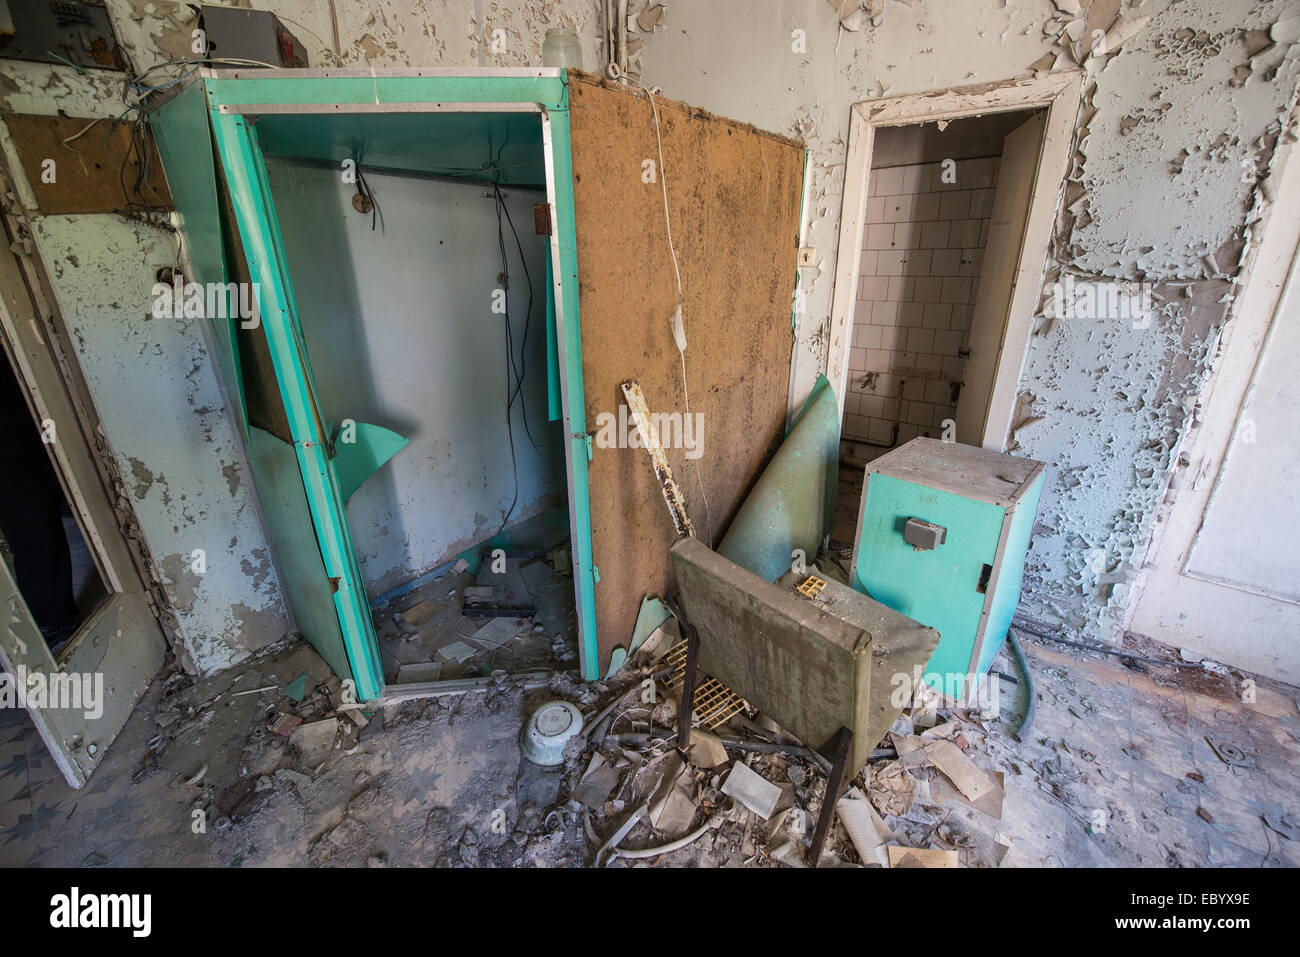 rentgenology room in City Hospital No. 126 in Pripyat abandoned city, Chernobyl Exclusion Zone, Ukraine - Stock Image